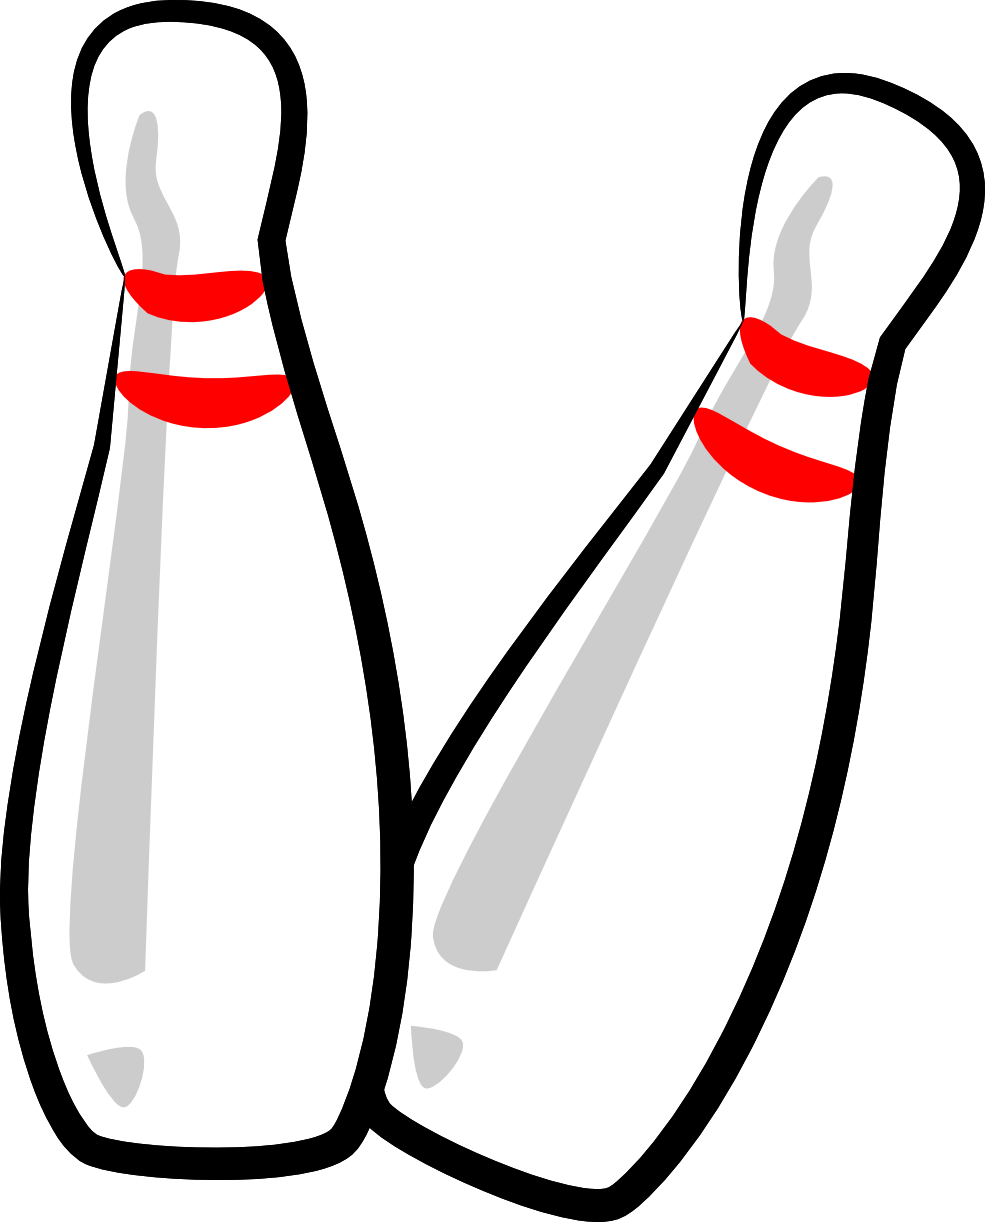 985x1222 Bowling Pin Clip Art Many Interesting Cliparts